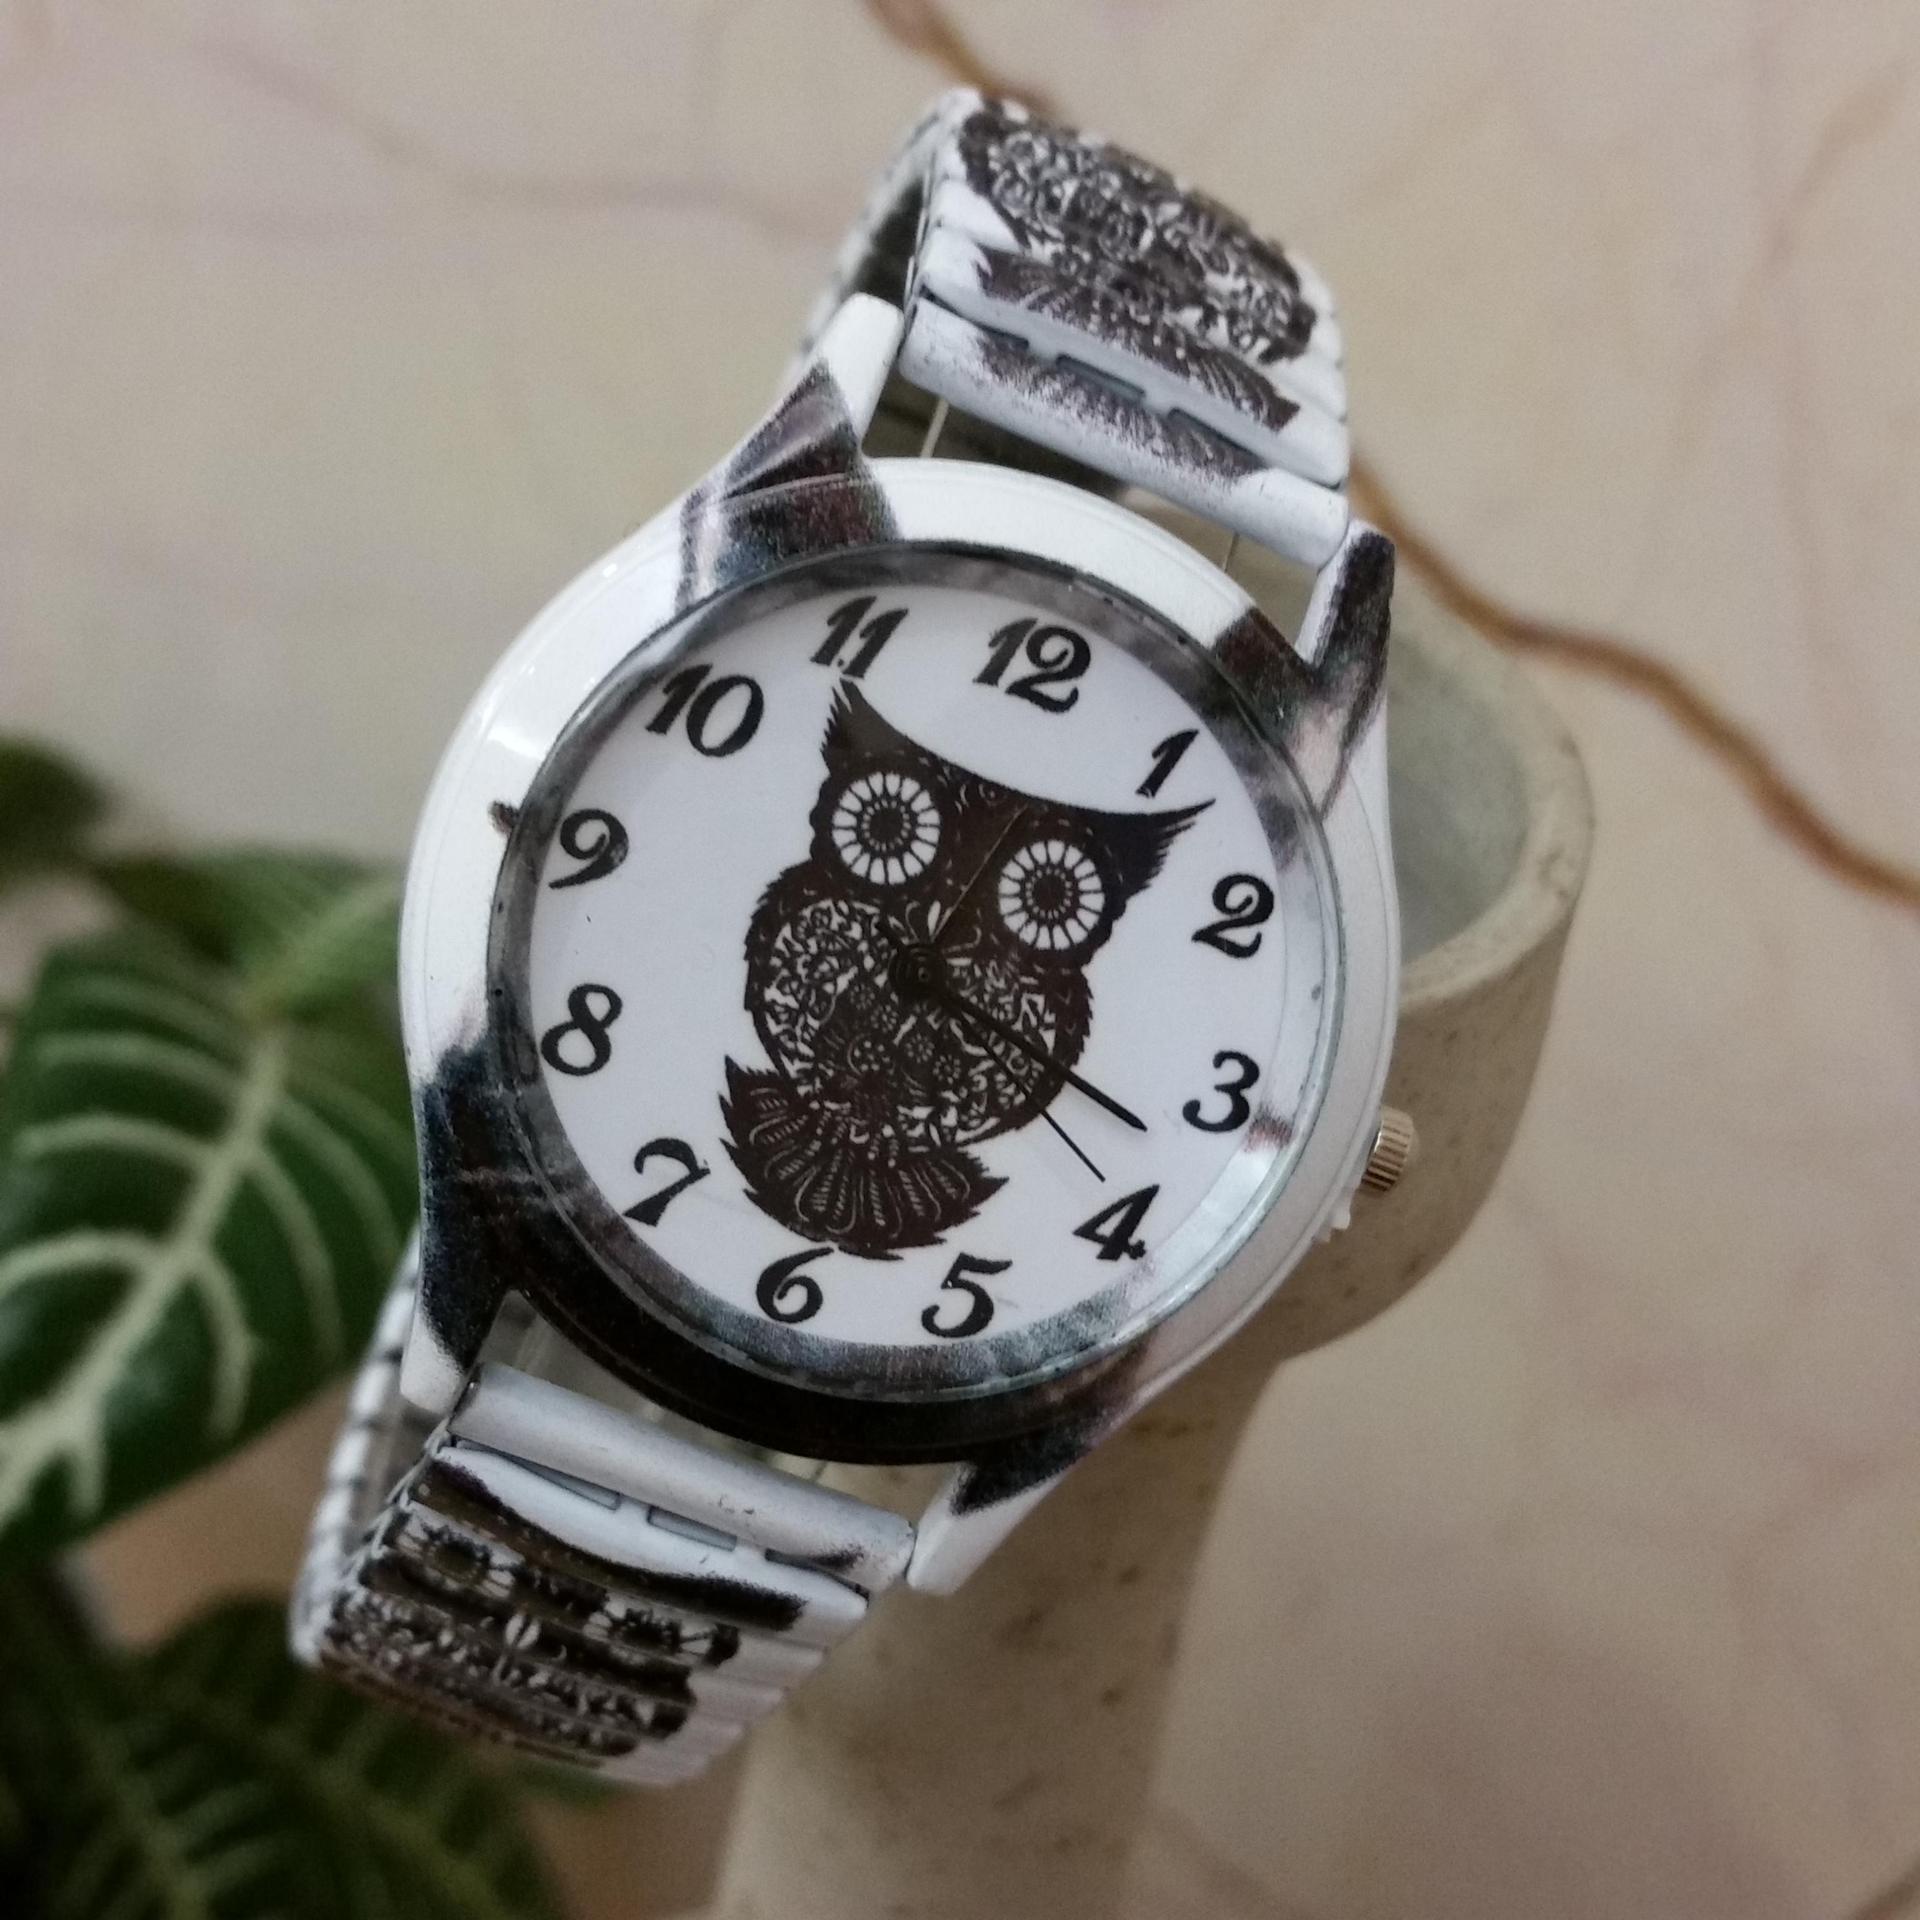 Brand Women Watch Ladies Watch Printed Elastic Steel Band Watch Owl Quartz Watch Quartz Wristwatch Clock Montre Relogio Feminino new brand rose gold women watch steel luxury ladies watch creative girl quartz wristwatch clock montre relogio feminino 2018